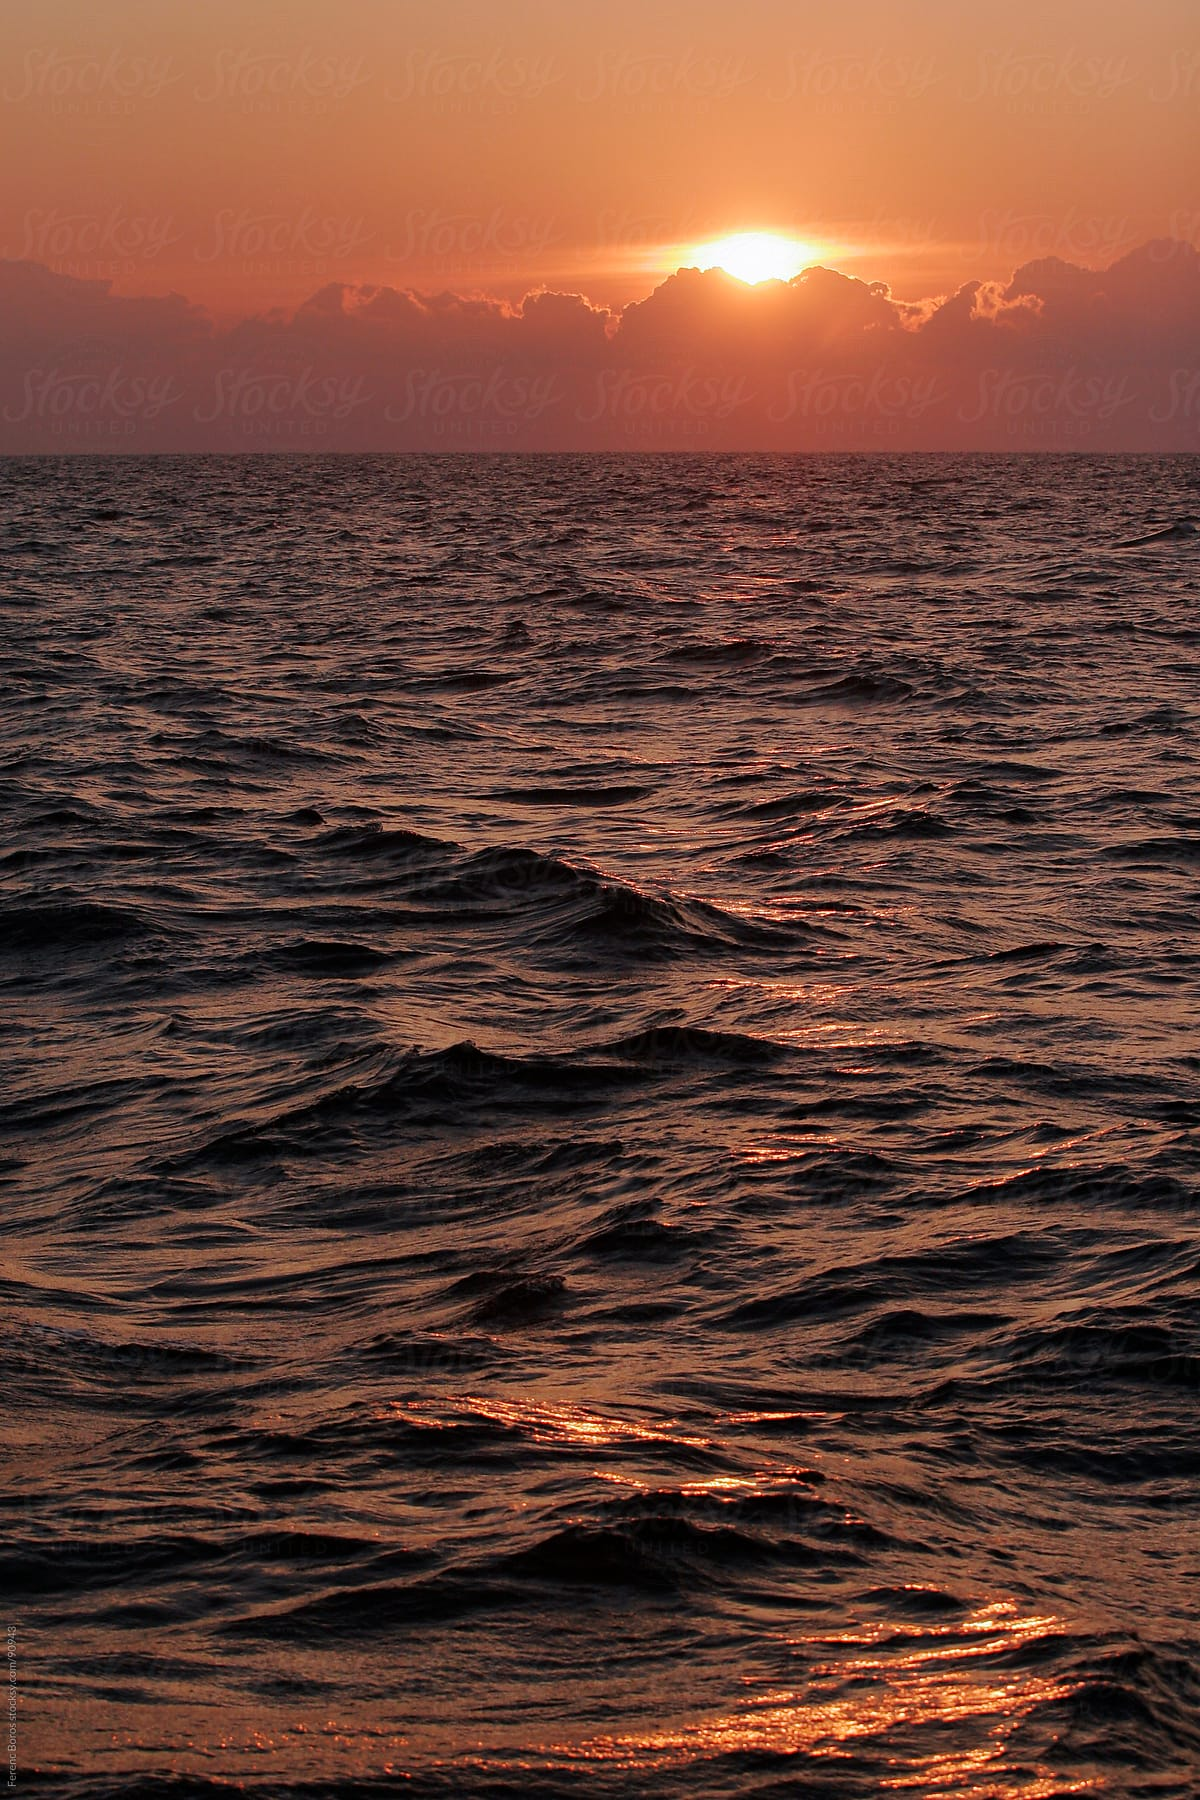 Sunset Behind Glowing Clouds Above Sea Horizon By Ferenc Boros Sun sunset glare clouds sea horizon